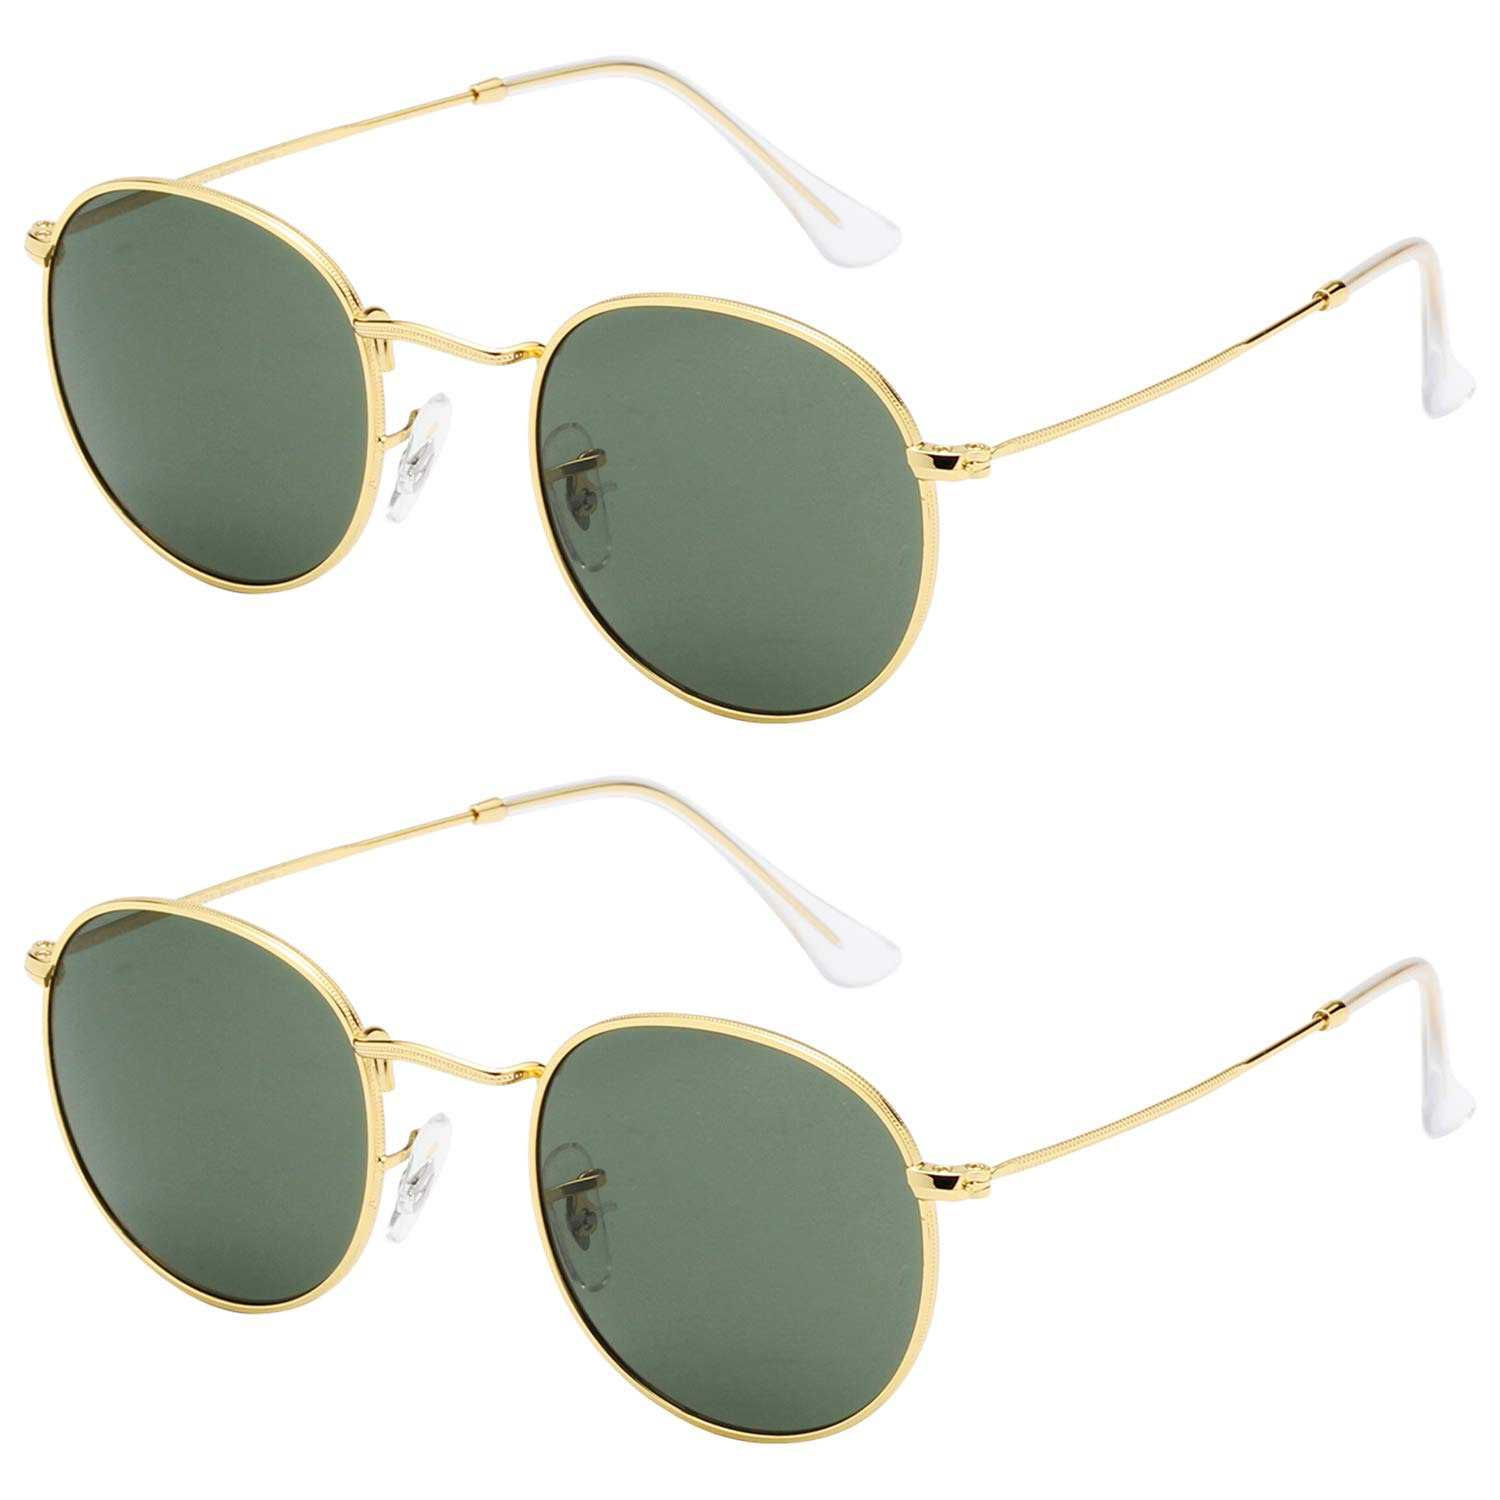 fa49c1a020a6 LianSan Classic Metal Frame Round Circle Mirrored Sunglasses with Glasses  Lenses for Men and Women 3447 Green Glasses Lenses-2 Pack at Amazon Women s  ...